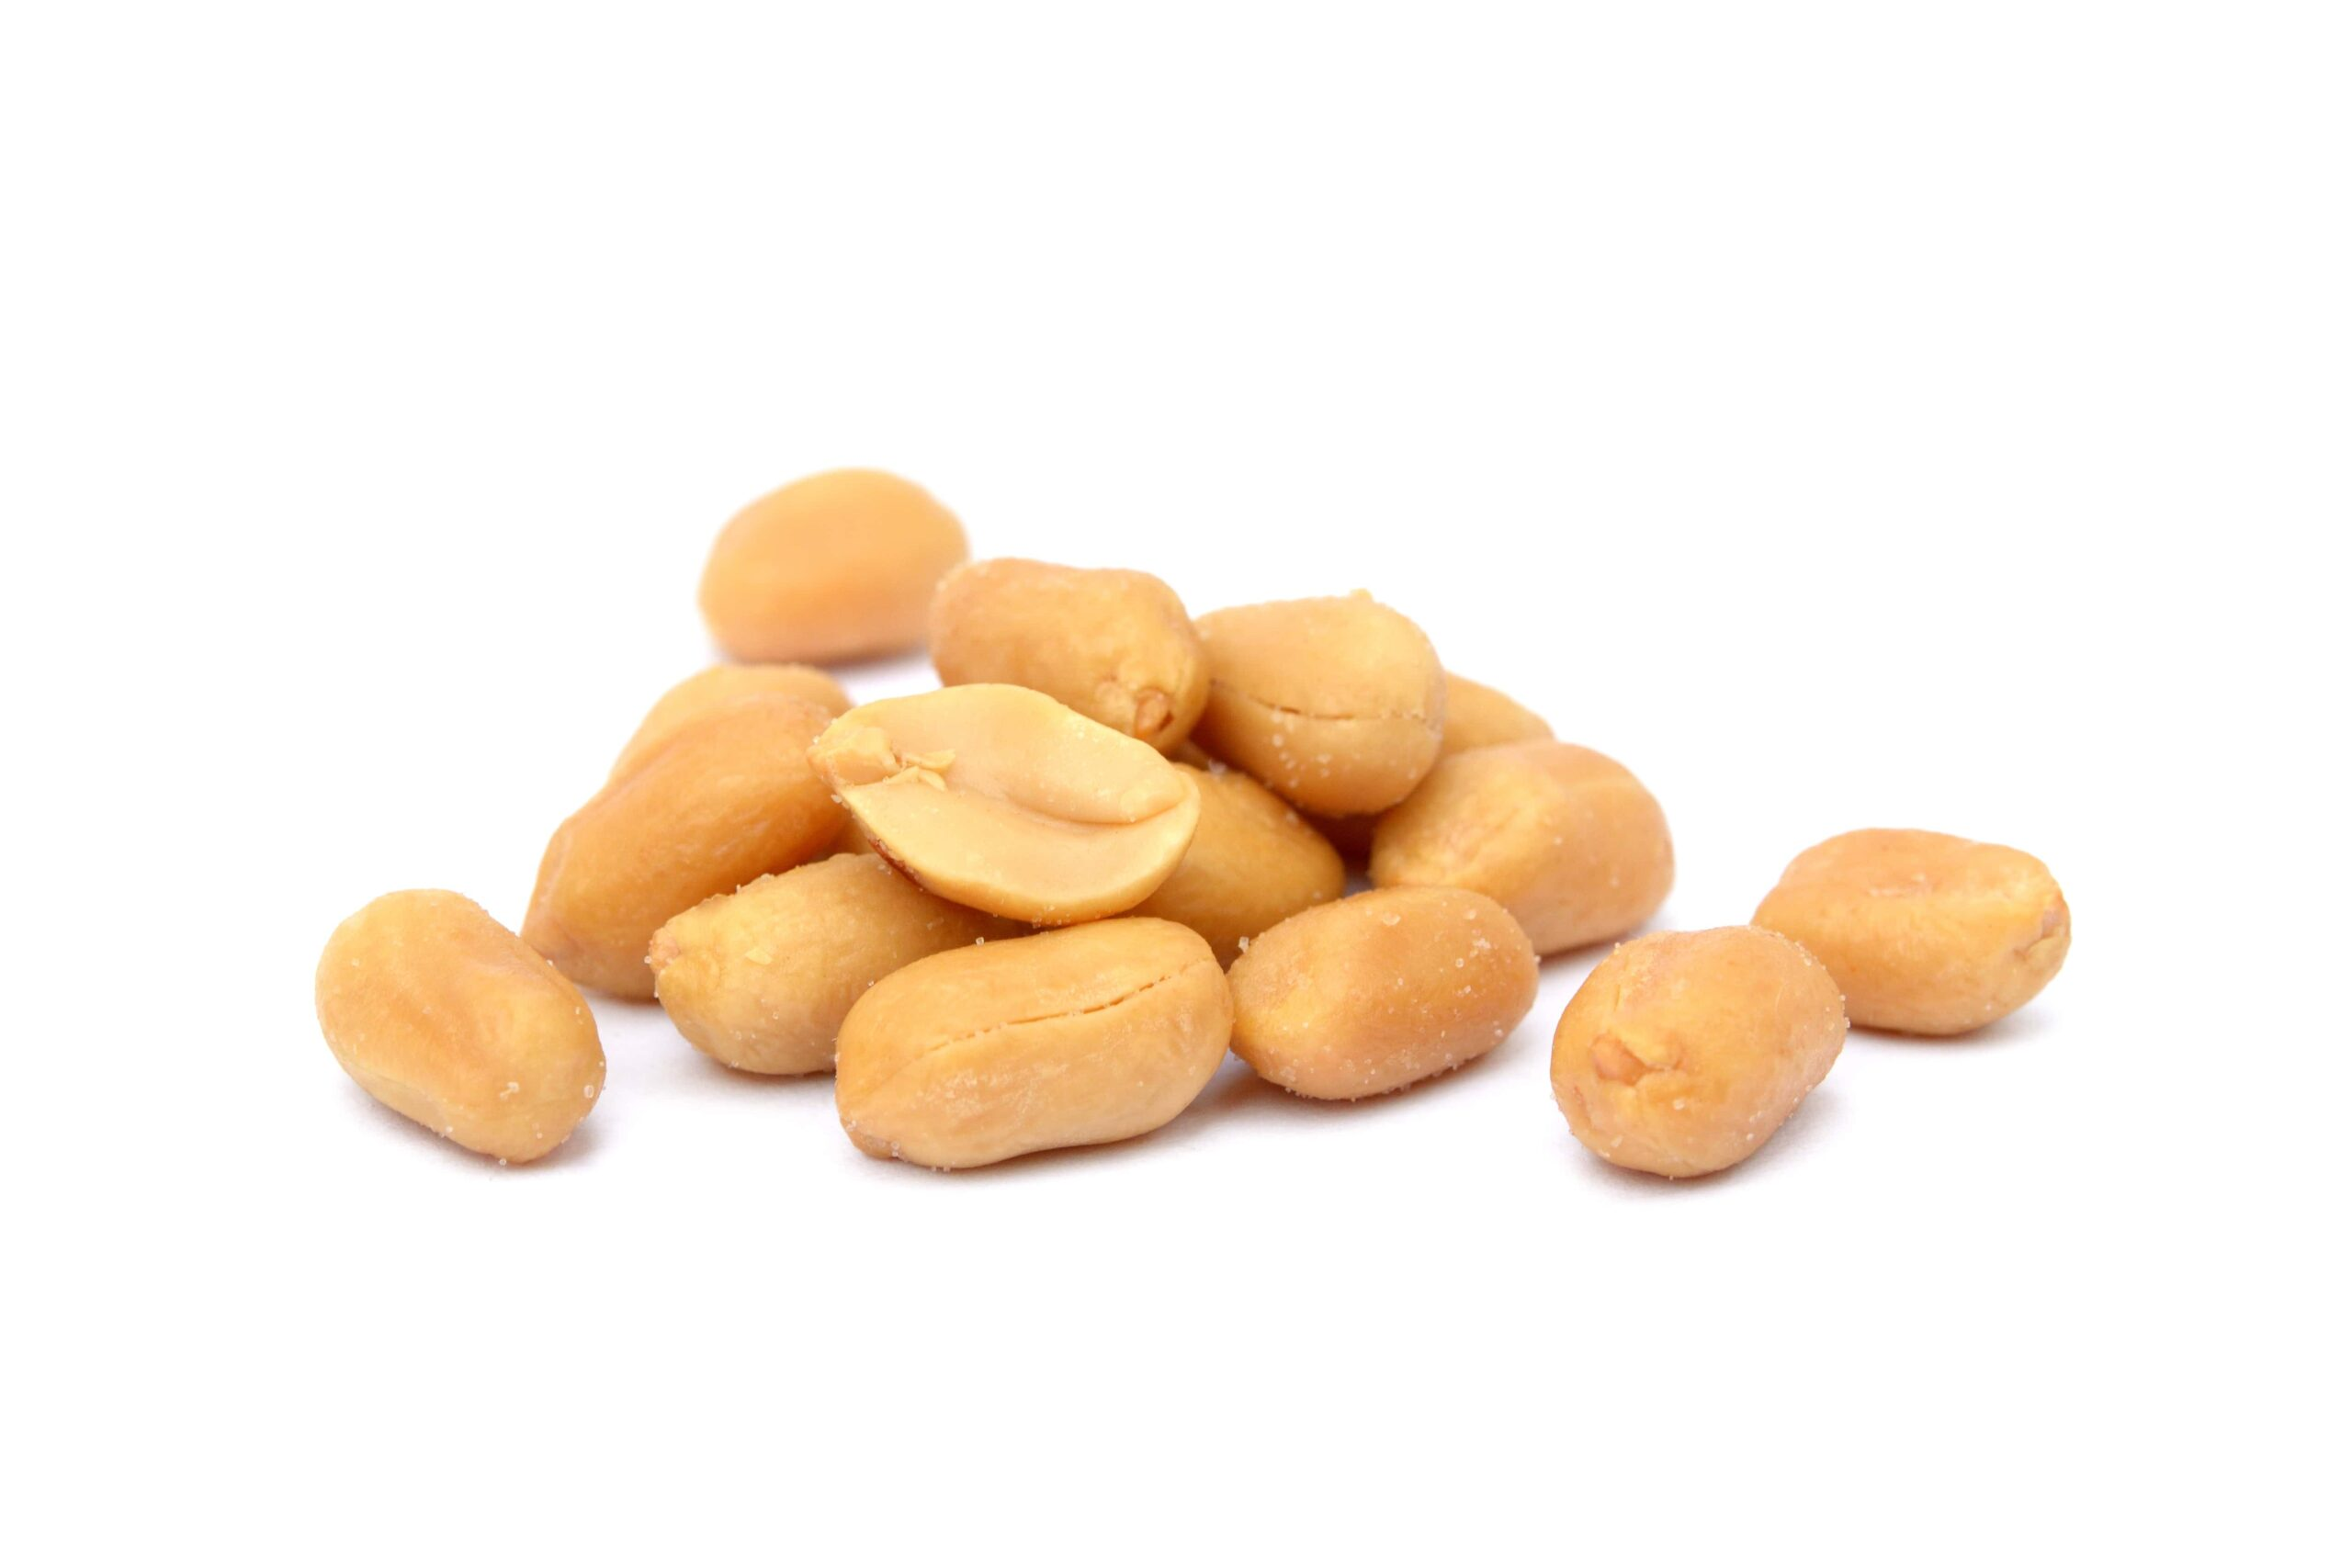 Salted _ Roasted Peanuts